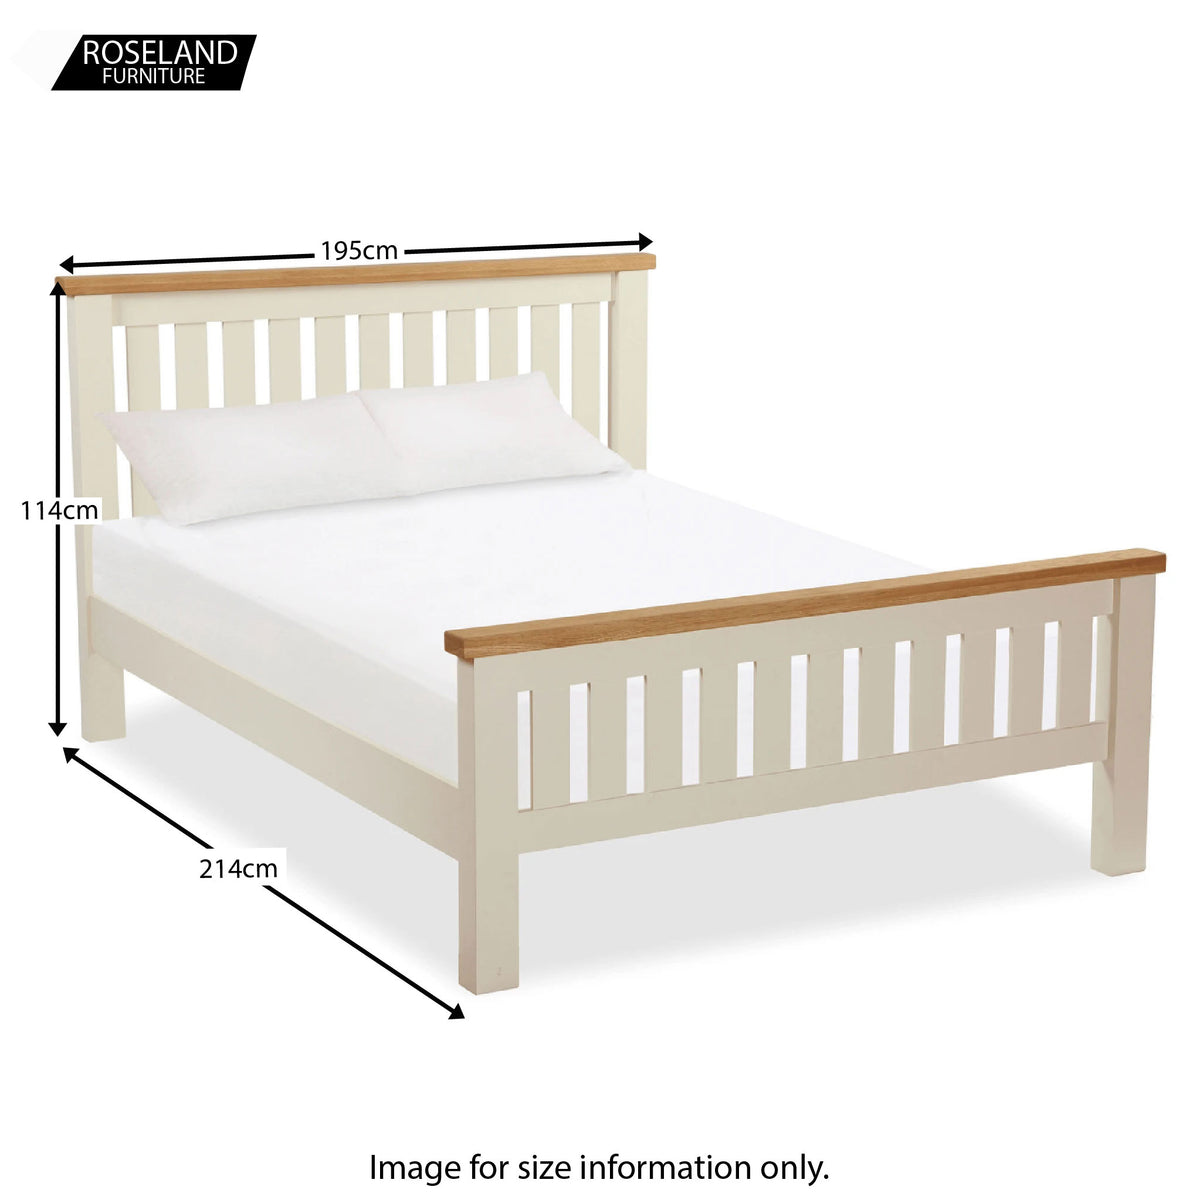 Daymer Cream 6 ft Super King Size Bed Frame - Size Guide